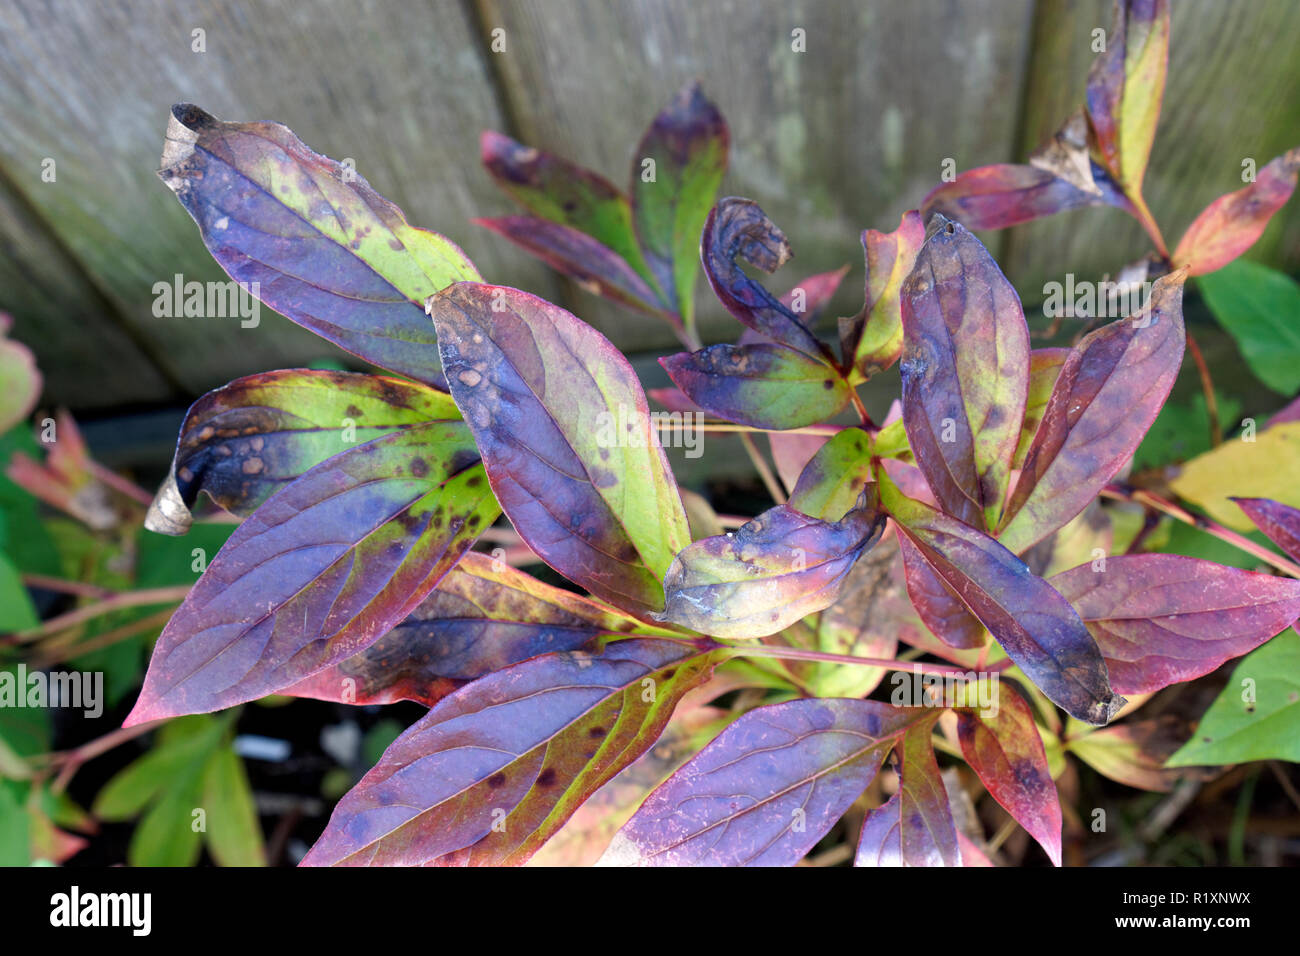 close-up-of-peony-plant-leaves-infected-